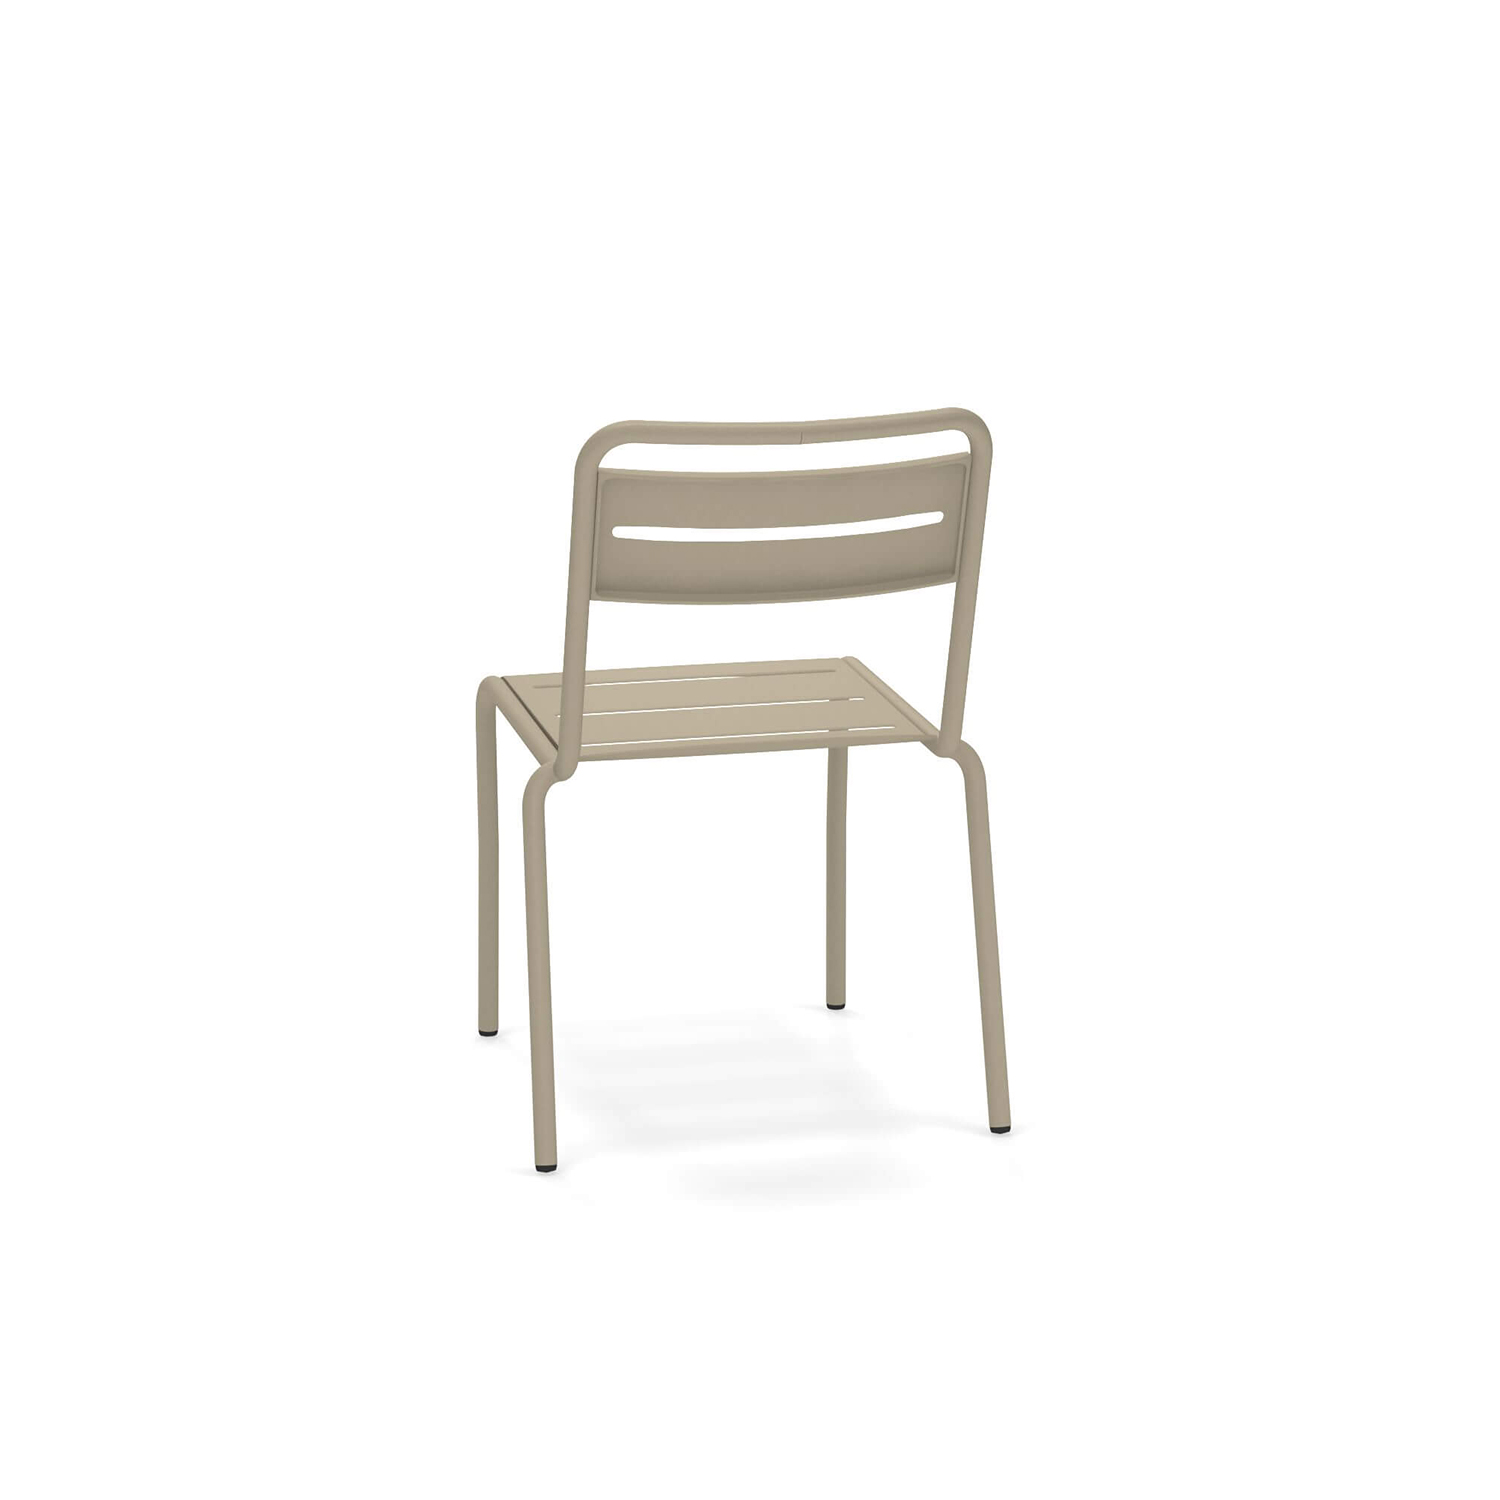 Star Chair - Set of 4 - This is a set of 4 chairs that suit the garden as well as the home. A series of chairs and tables, the Star collection is an evergreen among EMU products. Simple shapes, colour and versatility mark this collection which is defined by soft, classic lines, ideal in multiple contexts and surroundings. The Star collection comprises chair, armchair, stool, lounge chair, sofa and tables of various sizes.</p>  | Matter of Stuff